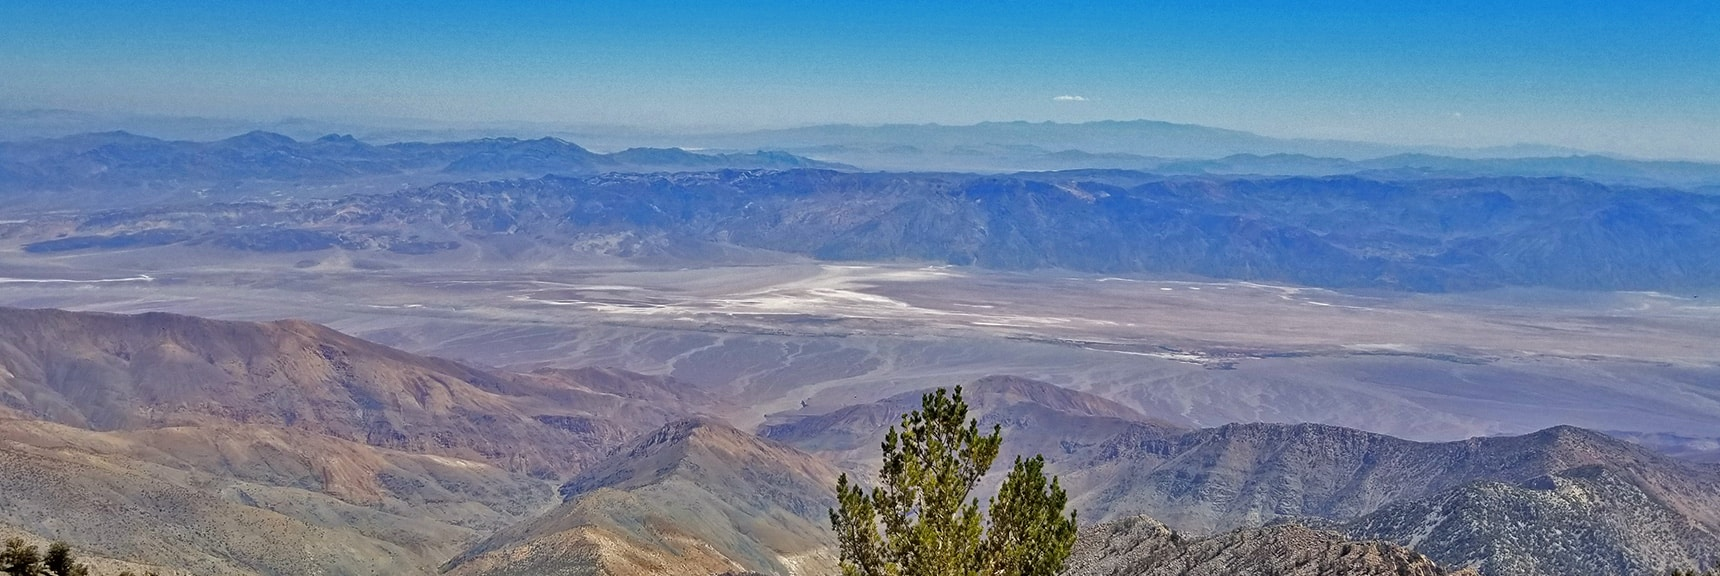 View Straight Down to Badwater Basin in Center, Mt. Charleston Wilderness Faintly in Horizon High Point   Telescope Peak Summit from Wildrose Charcoal Kilns Parking Area, Panamint Mountains, Death Valley National Park, California